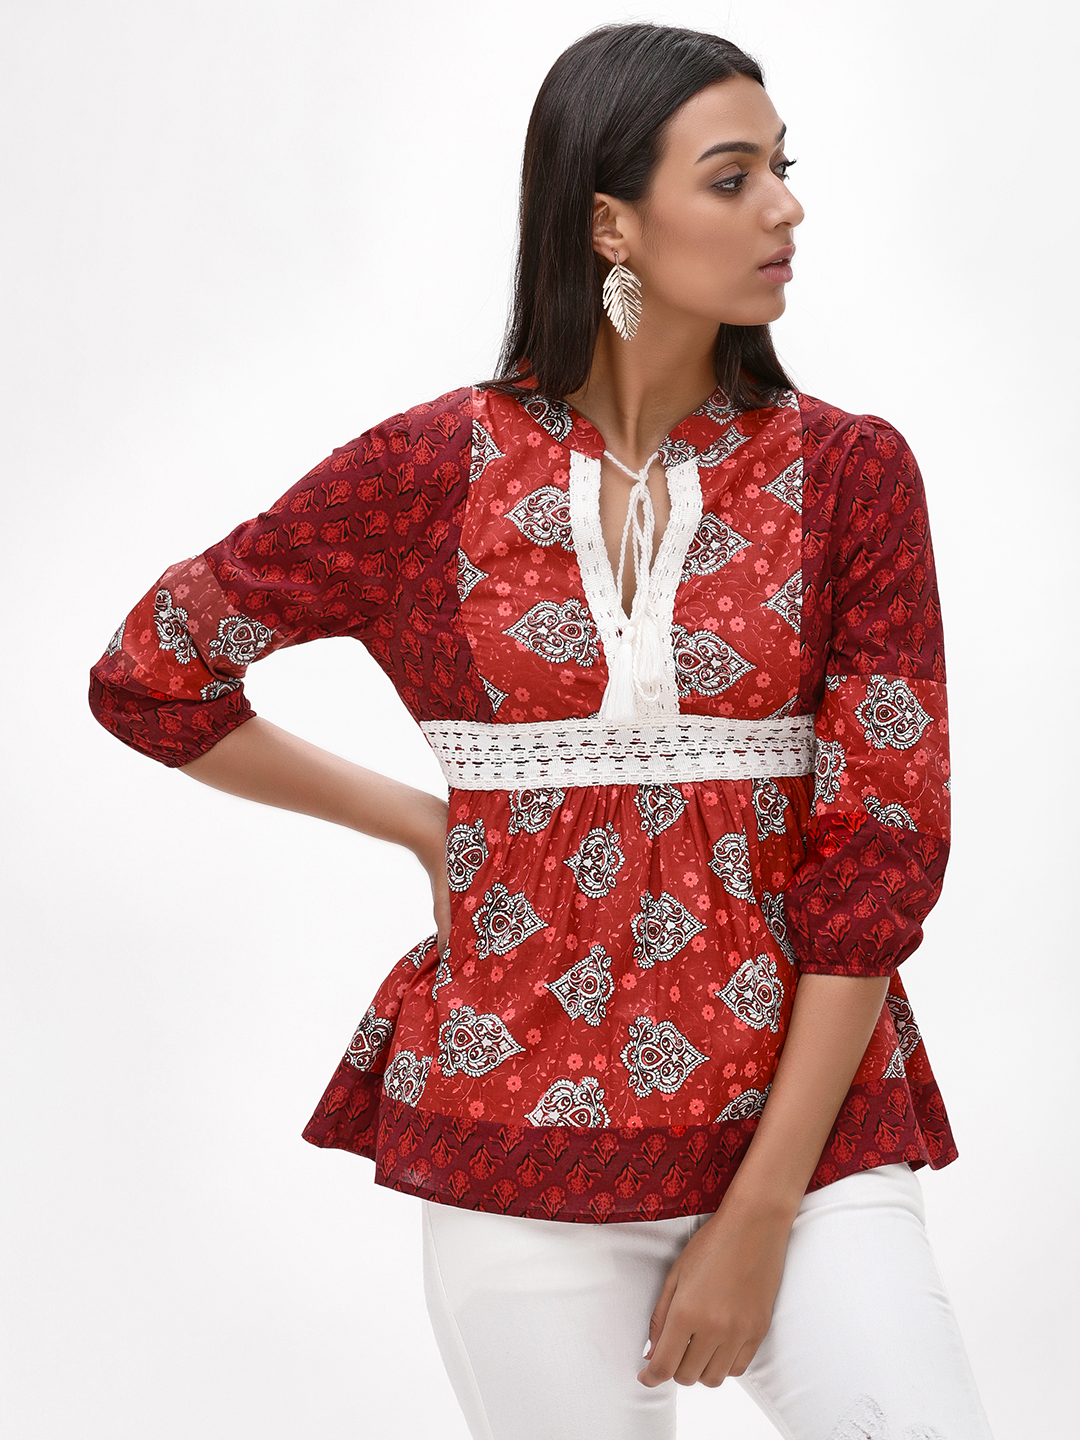 Rena Love Red Printed Top With Lace Detail 1